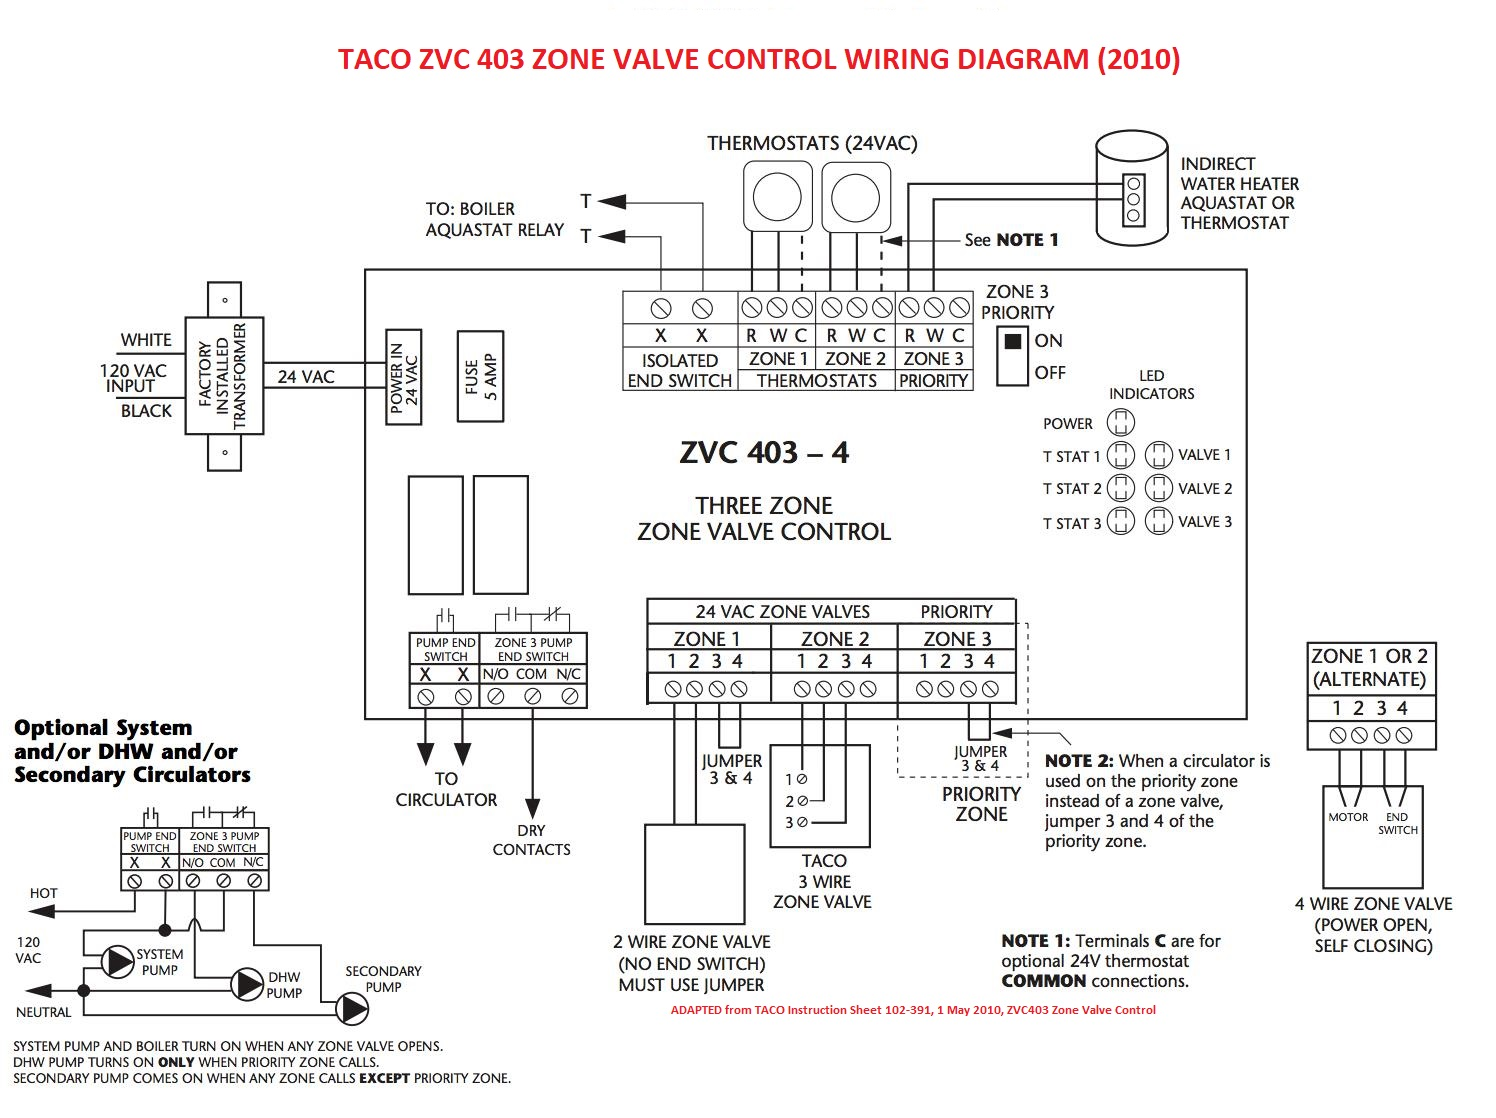 Zone Valve Wiring Installation Instructions Guide To Heating Williams Wall Furnace Thermostat Diagram Taci Zvc493 Click Enlarge At